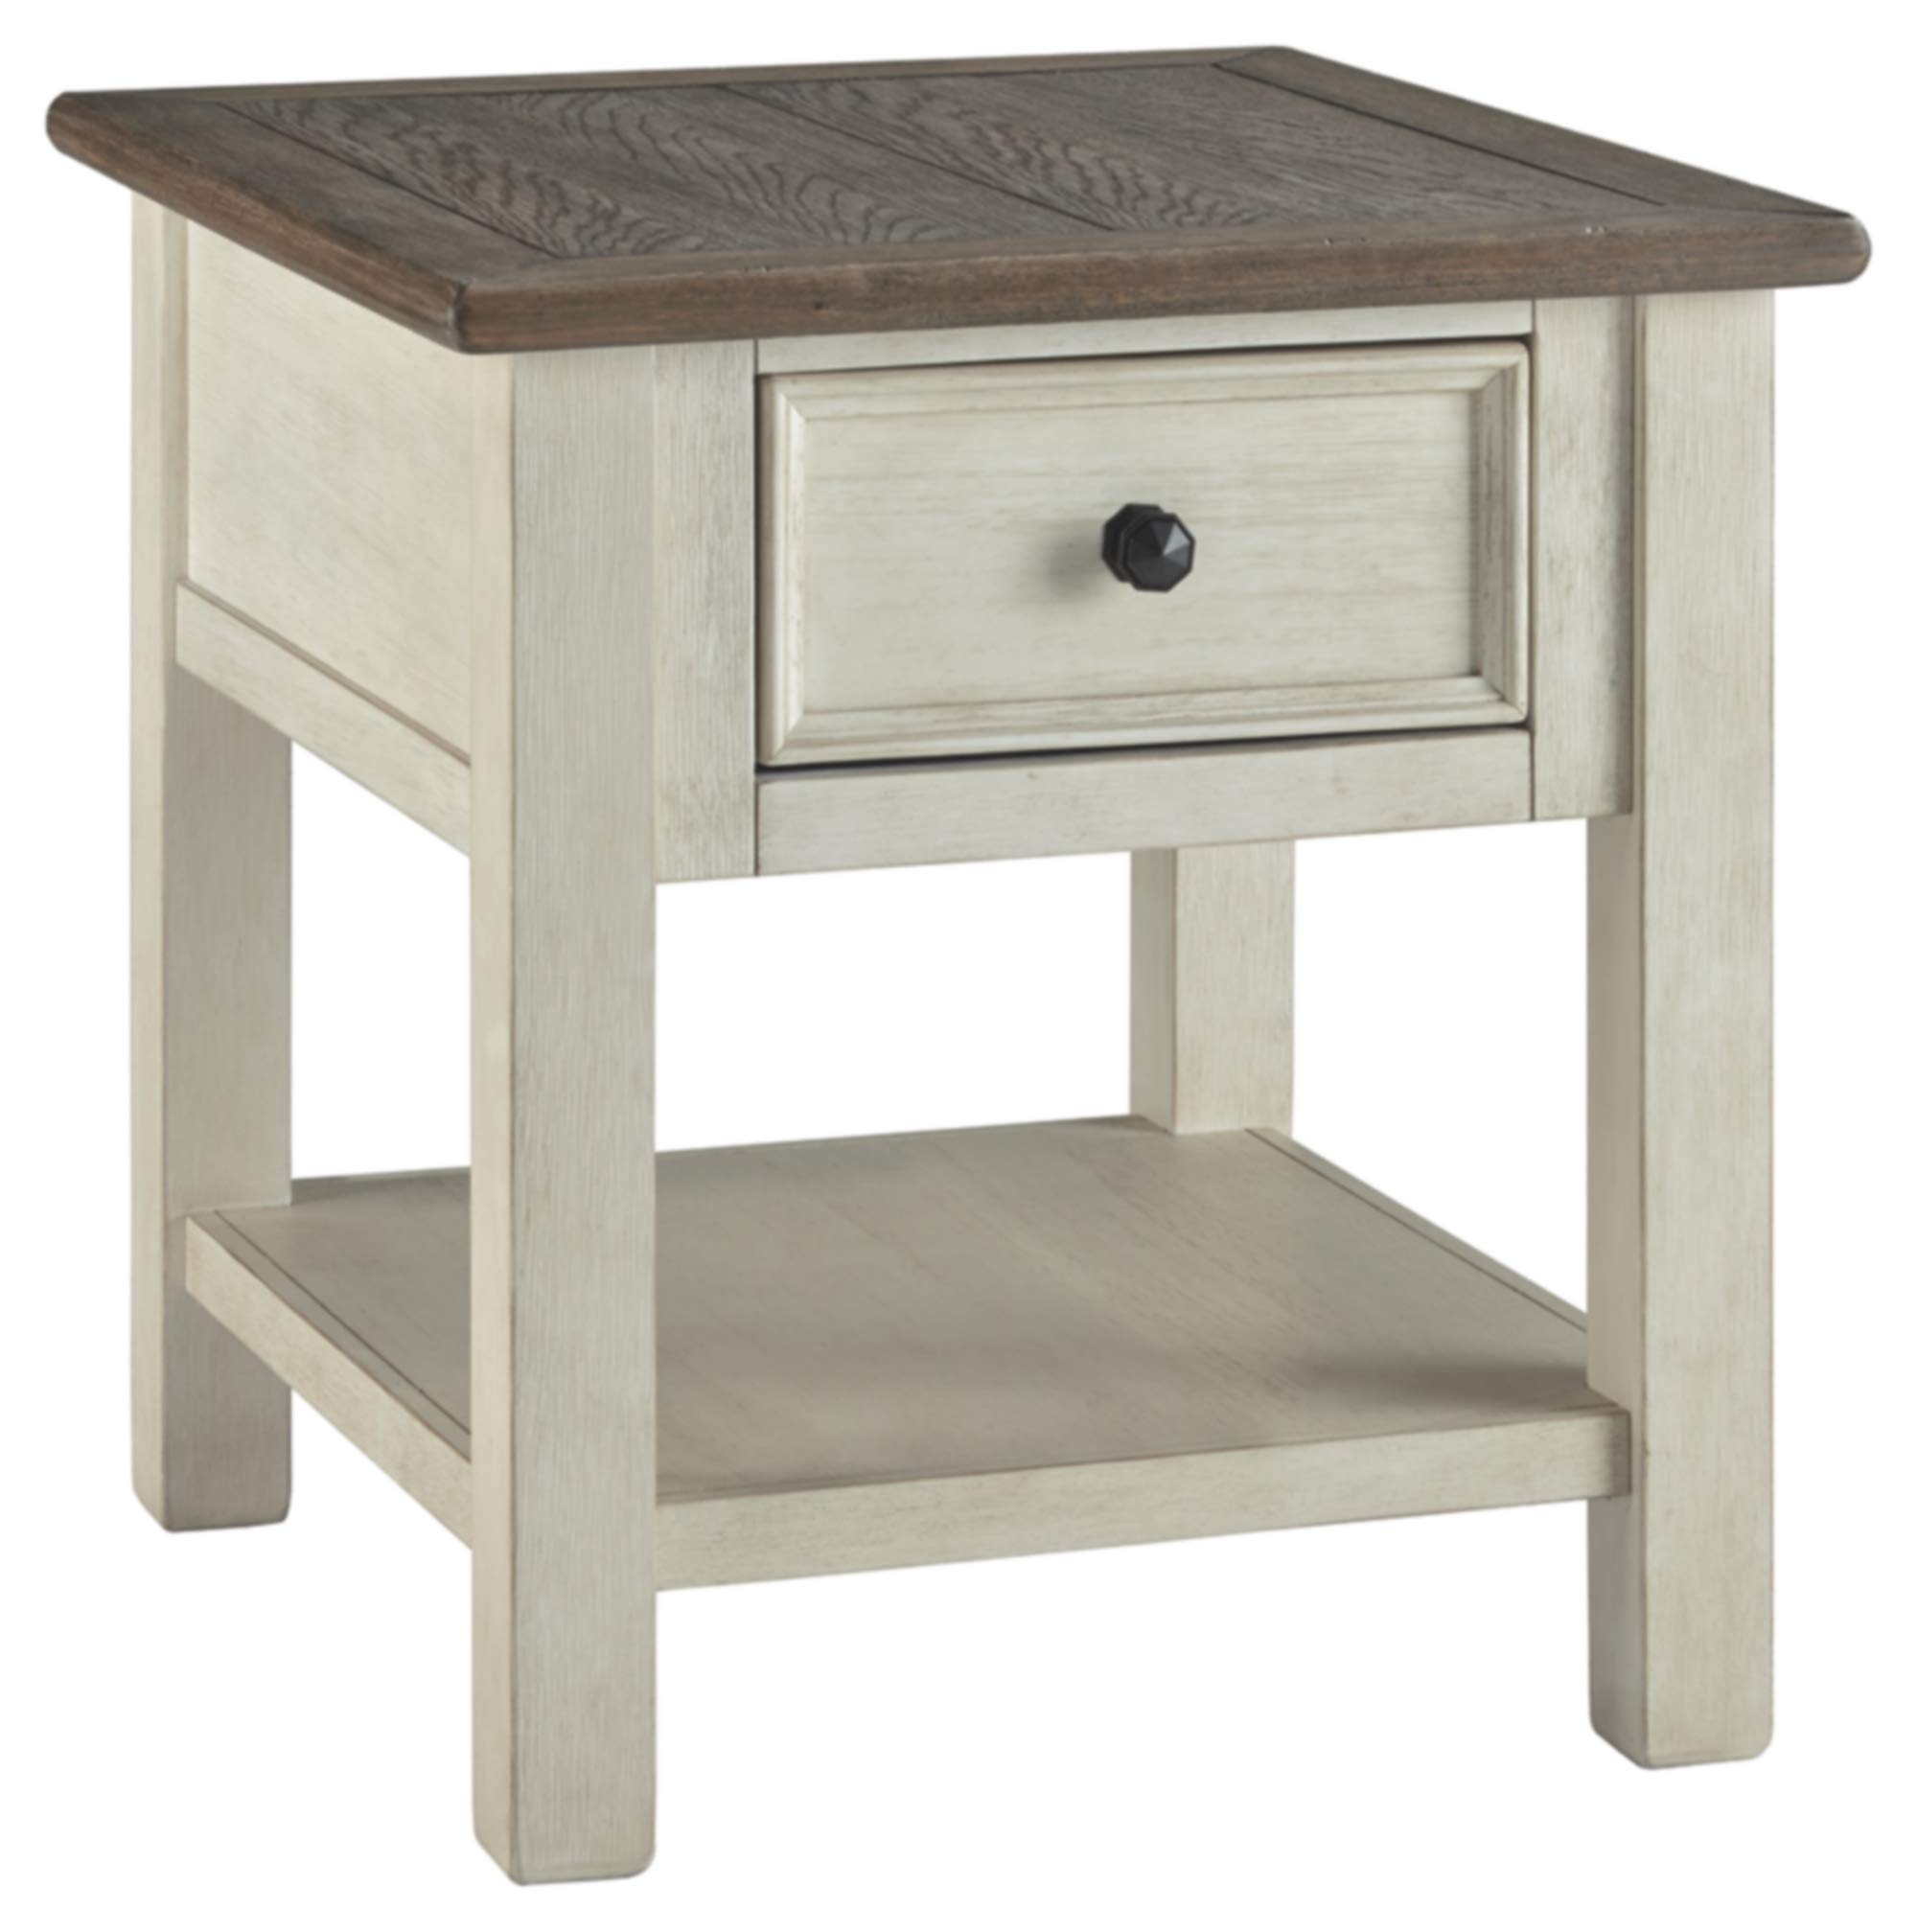 "Ashley Furniture Signature Design - Bolanburg Rectangularside Table, Two-Tone - FARMHOUSE END TABLE: Quaint, but never boring, this table's distressed finish puts the ""farm"" in farmhouse. The compact, chic design makes it handy for storage in an entryway or living room HANDSOMELY CRAFTED: Made of veneers, wood and engineered wood. Designed with a two-tone finish, plank-style tabletop and smooth-gliding drawer TWO-TONE DESIGN: The casual-cool, plank-style top adds distinctive charm to your decor that masters form and function. Set with a plant or lamp for extra pizzazz in your space - living-room-furniture, living-room, end-tables - 71nv0zKiTwL -"